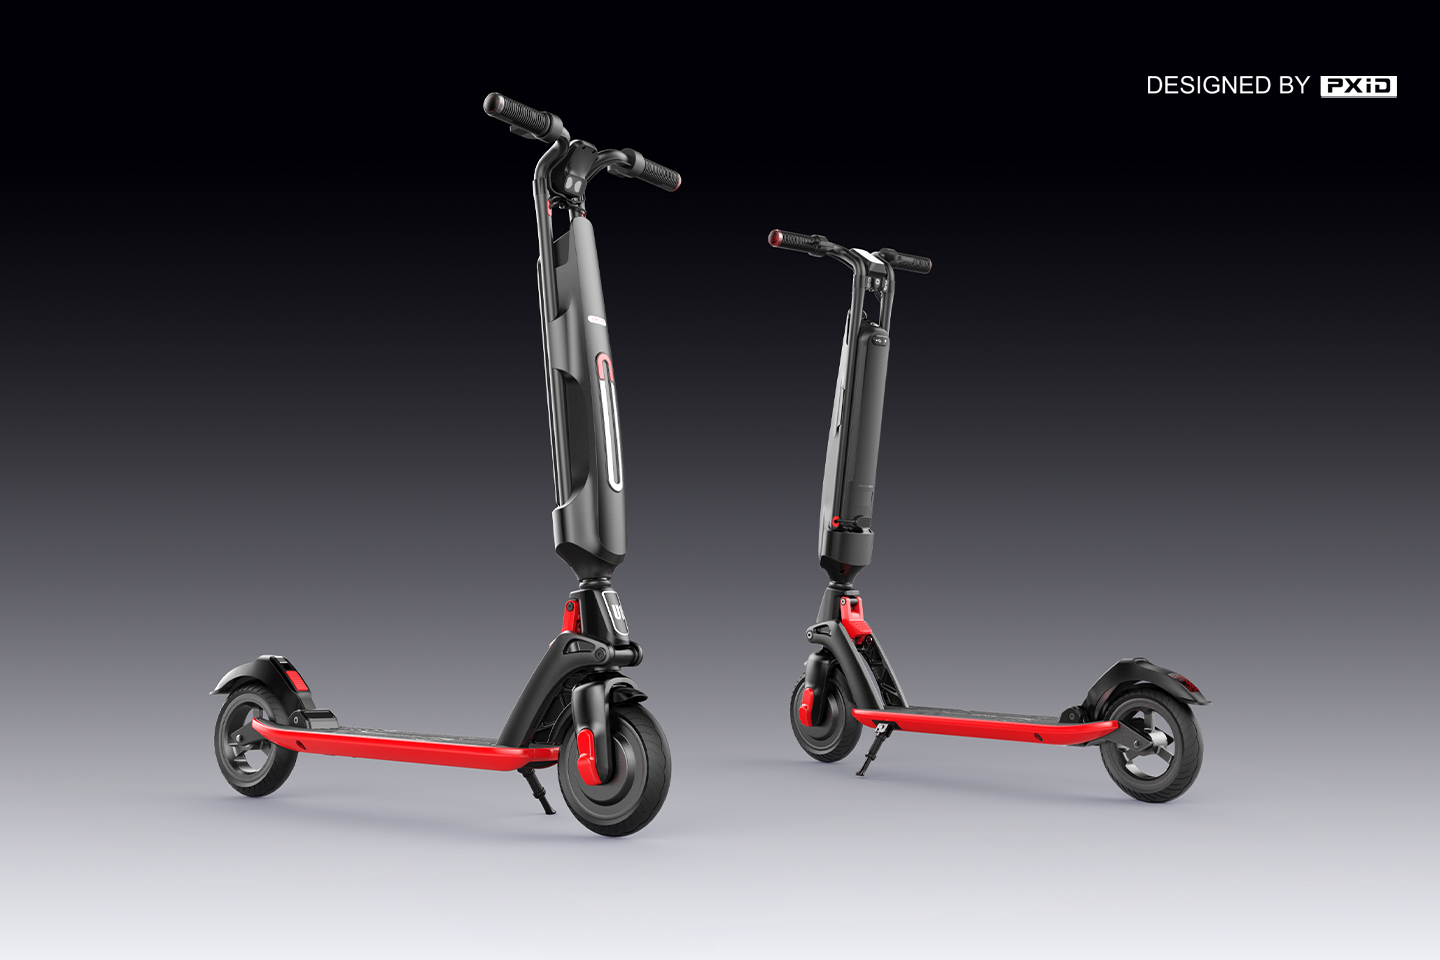 Will electric scooters appear in Canada and become the new generation of travel tools in the future?